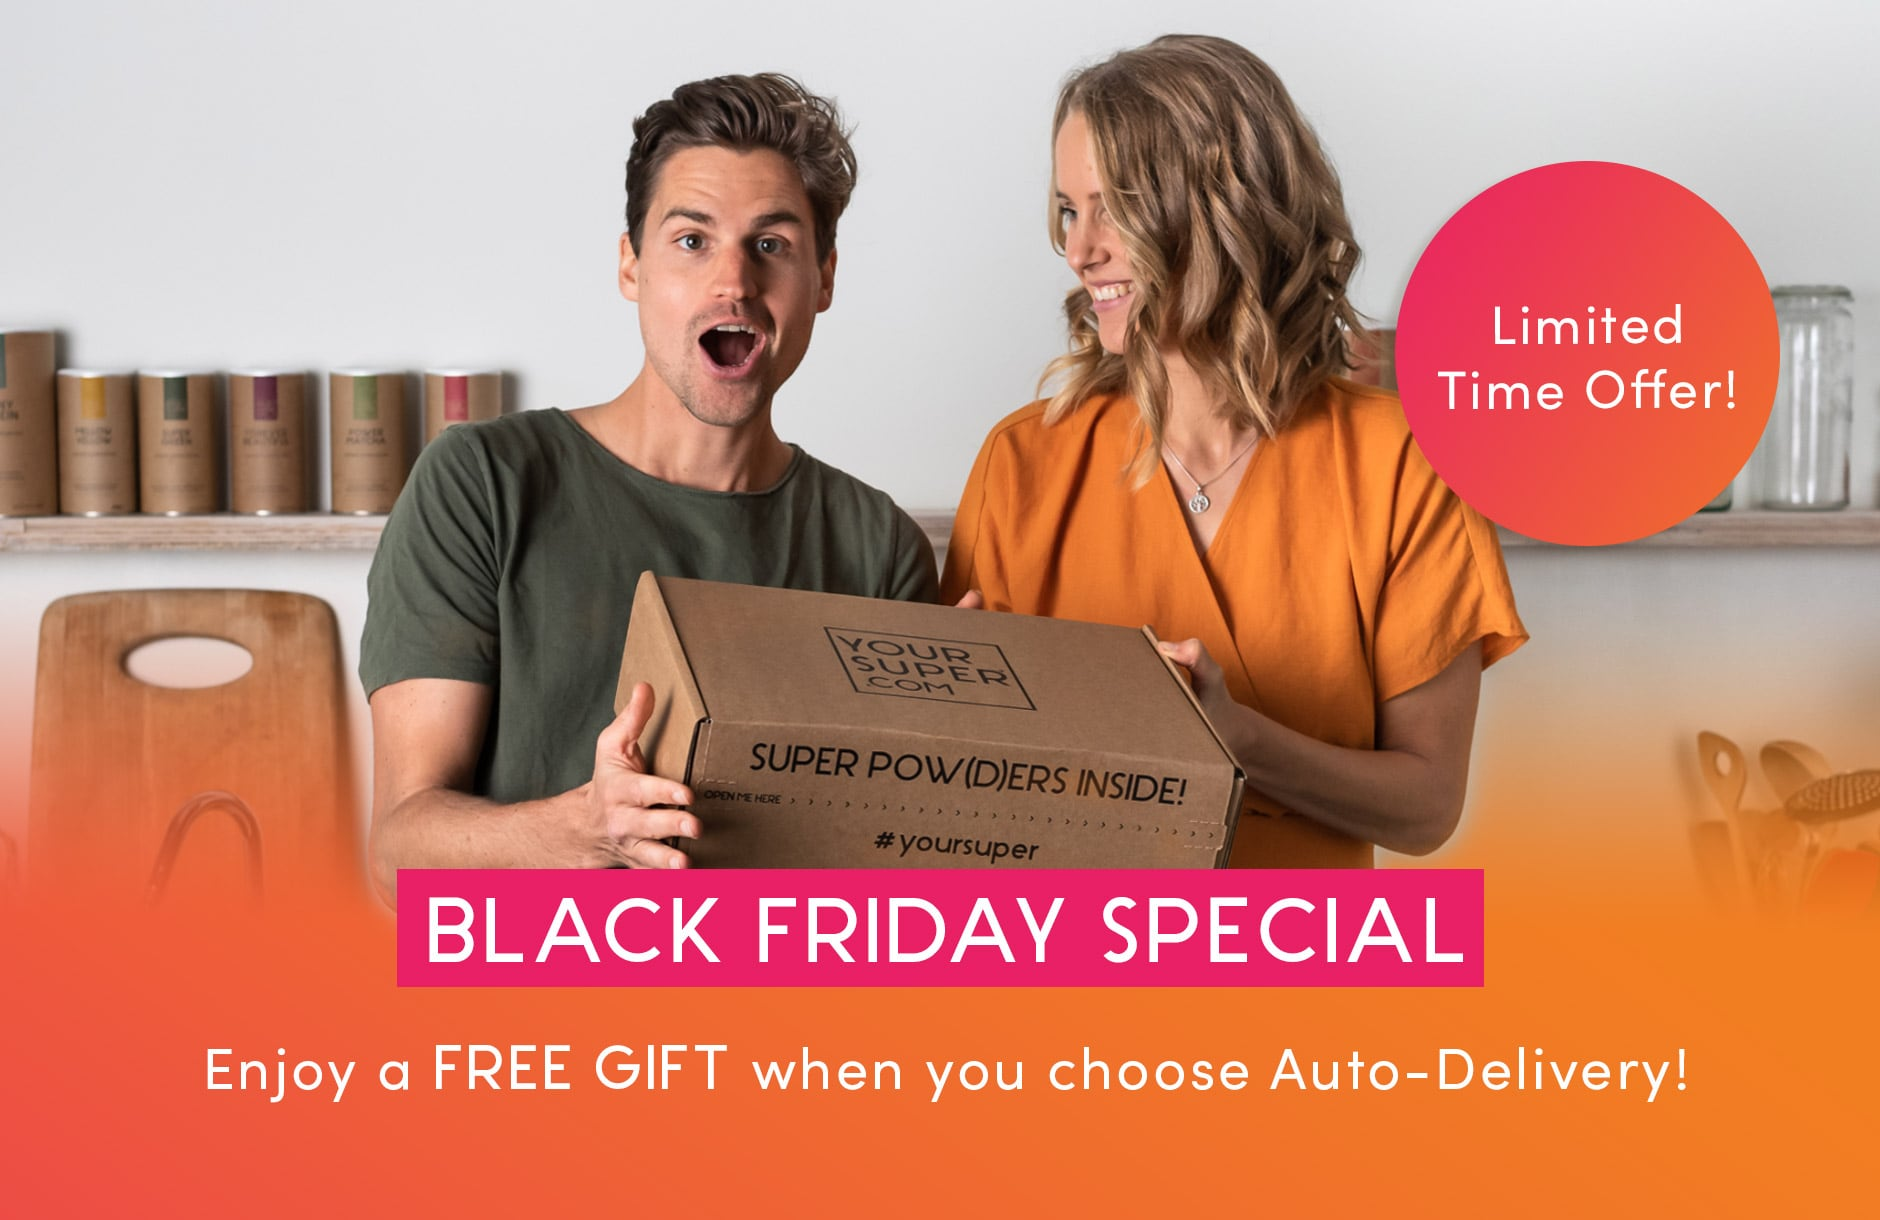 Black Friday Special. Enjoy a free gift when you choose Auto-Delivery